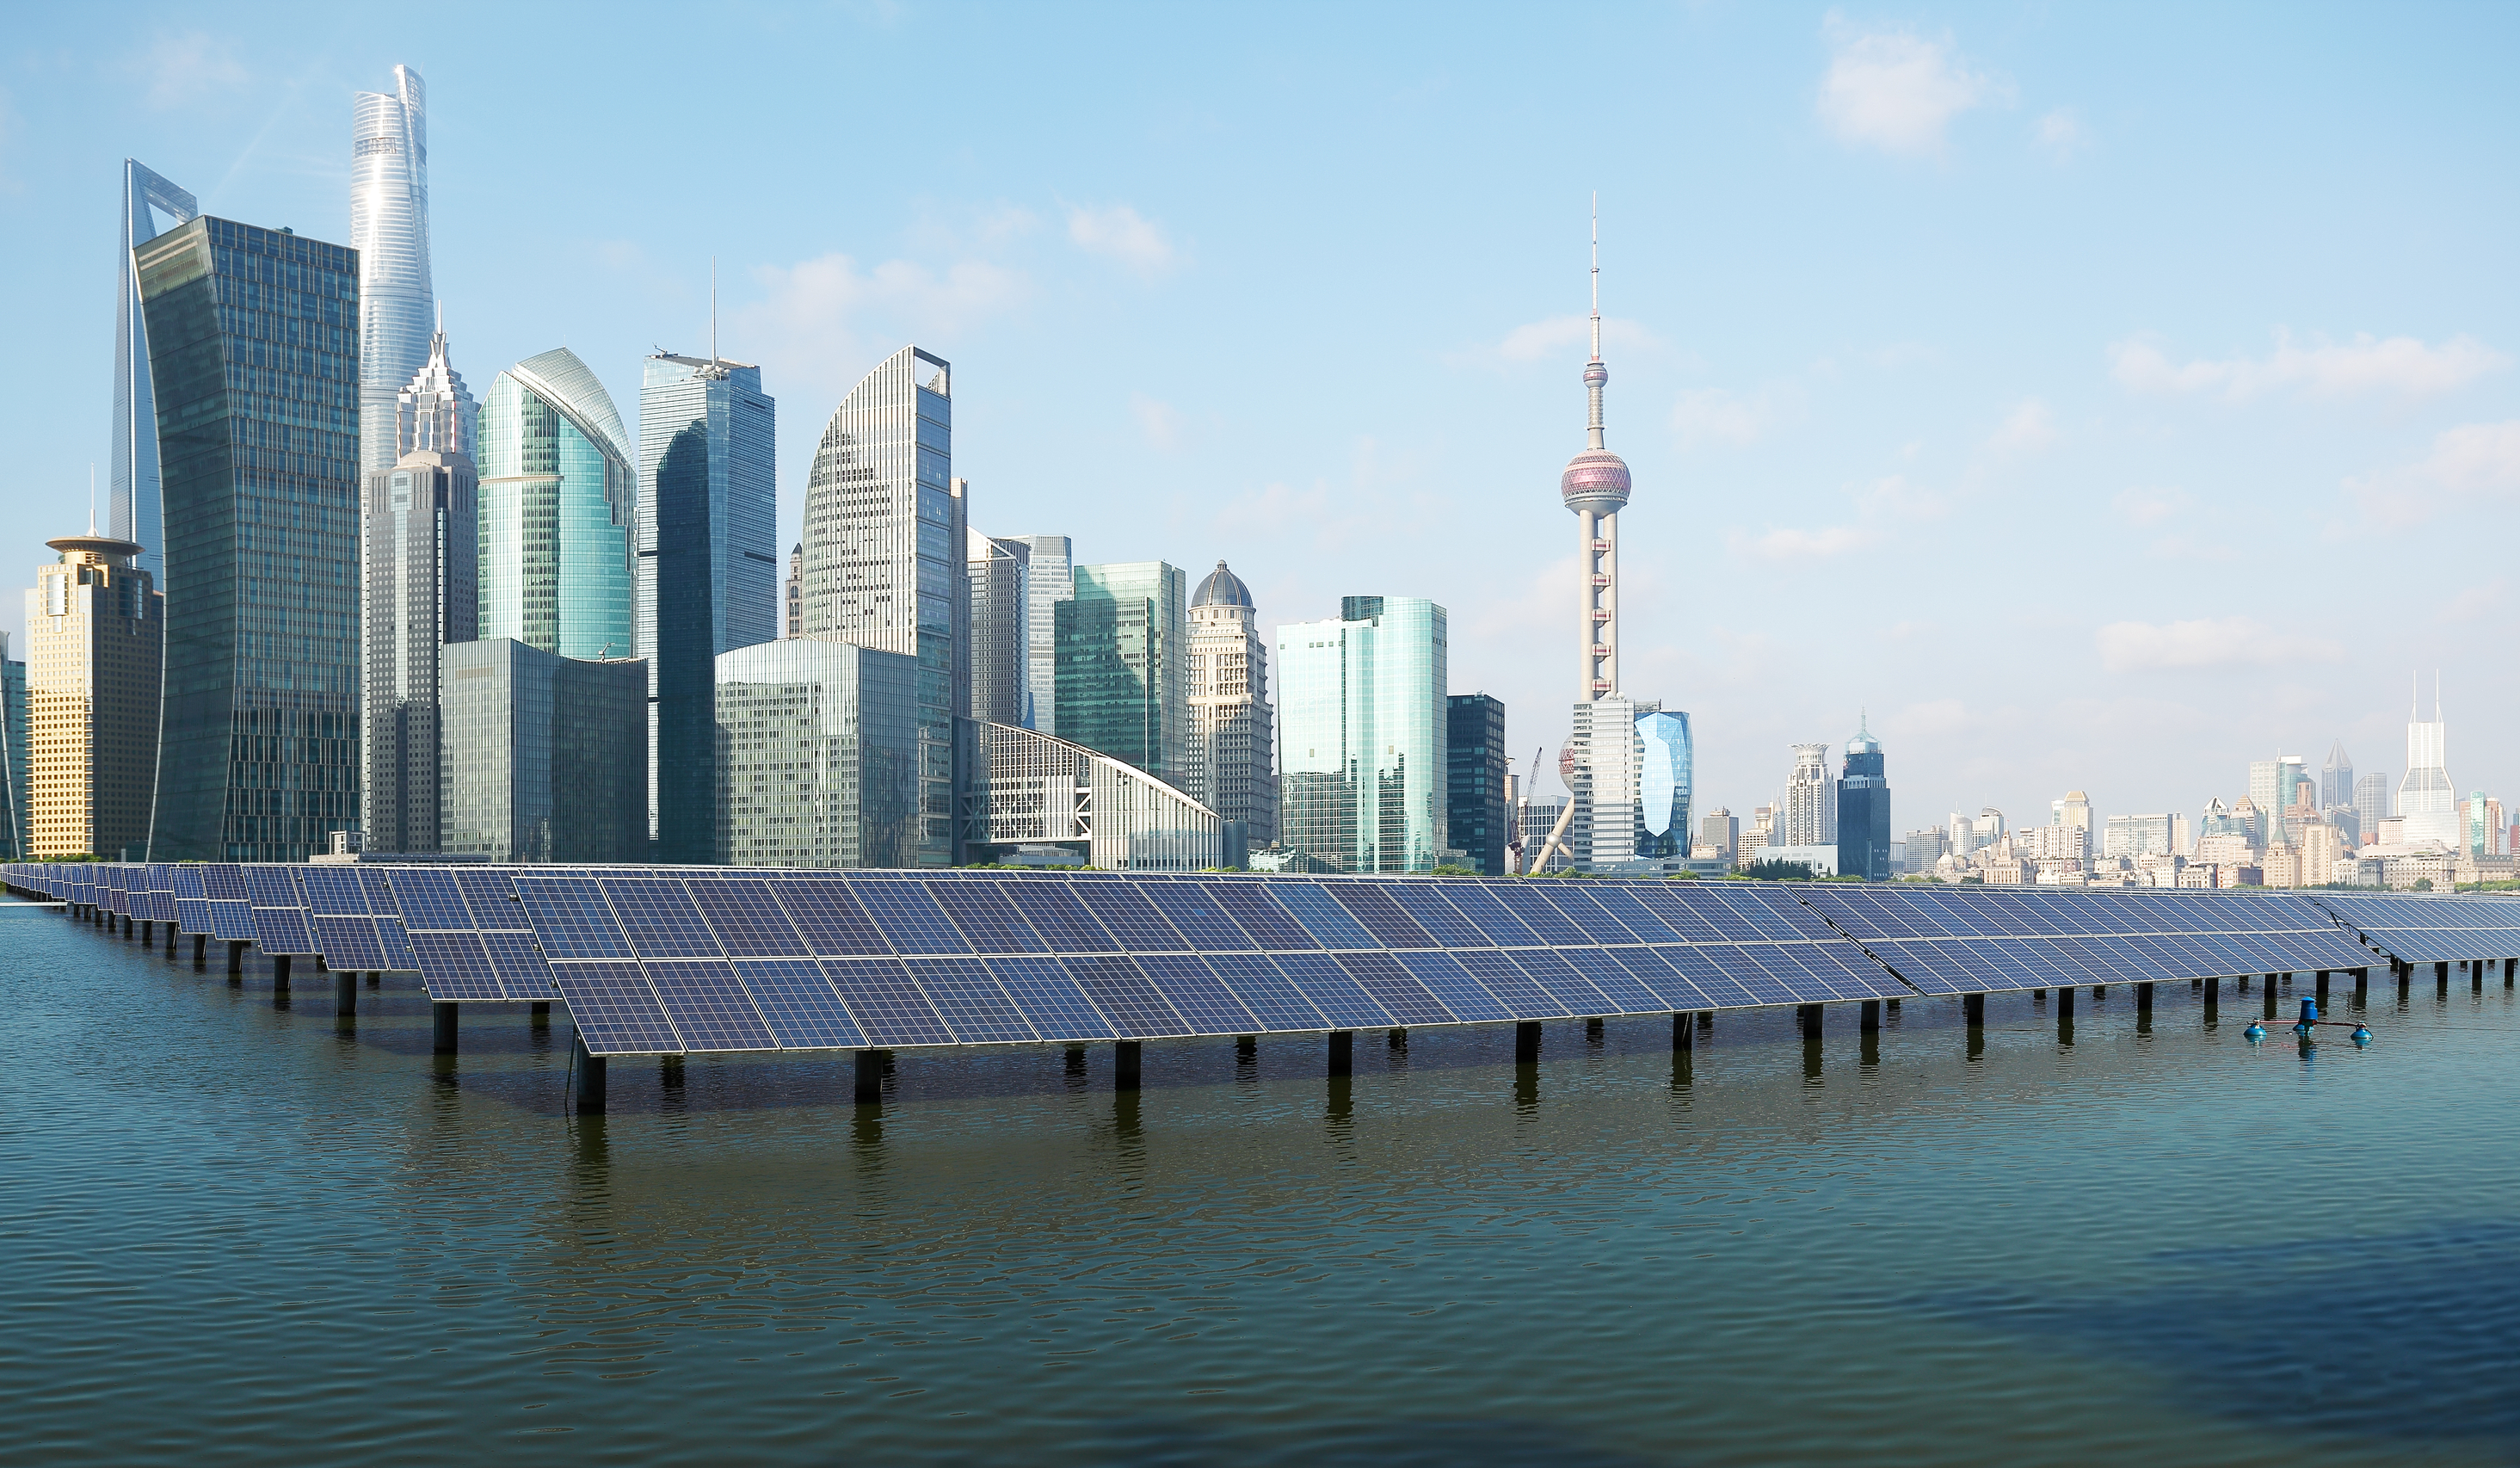 New league table: The EMs best positioned to attract renewable energy investment